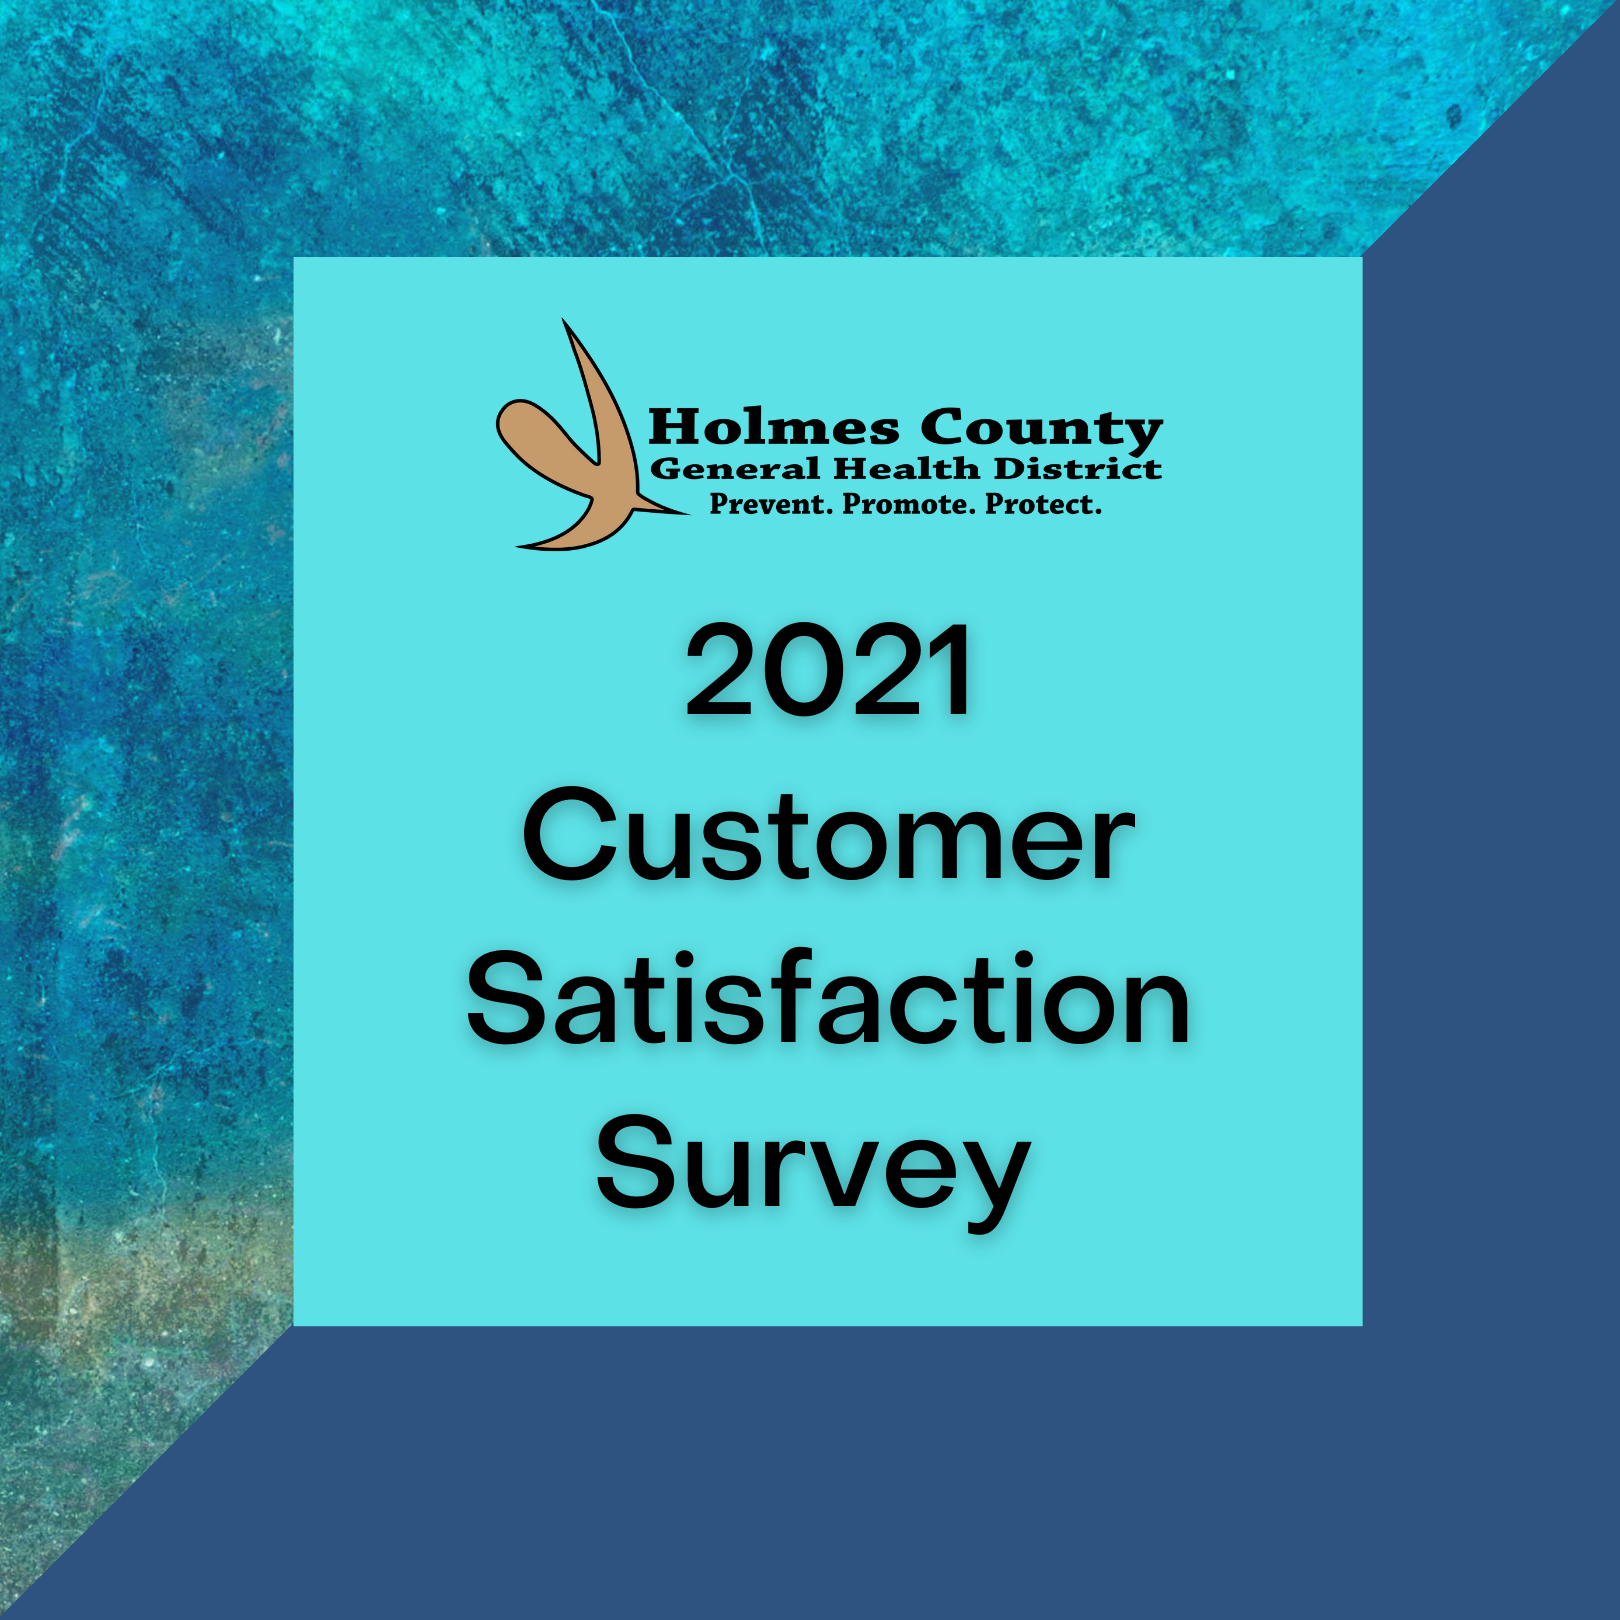 2021 Customer Satisfaction Survey